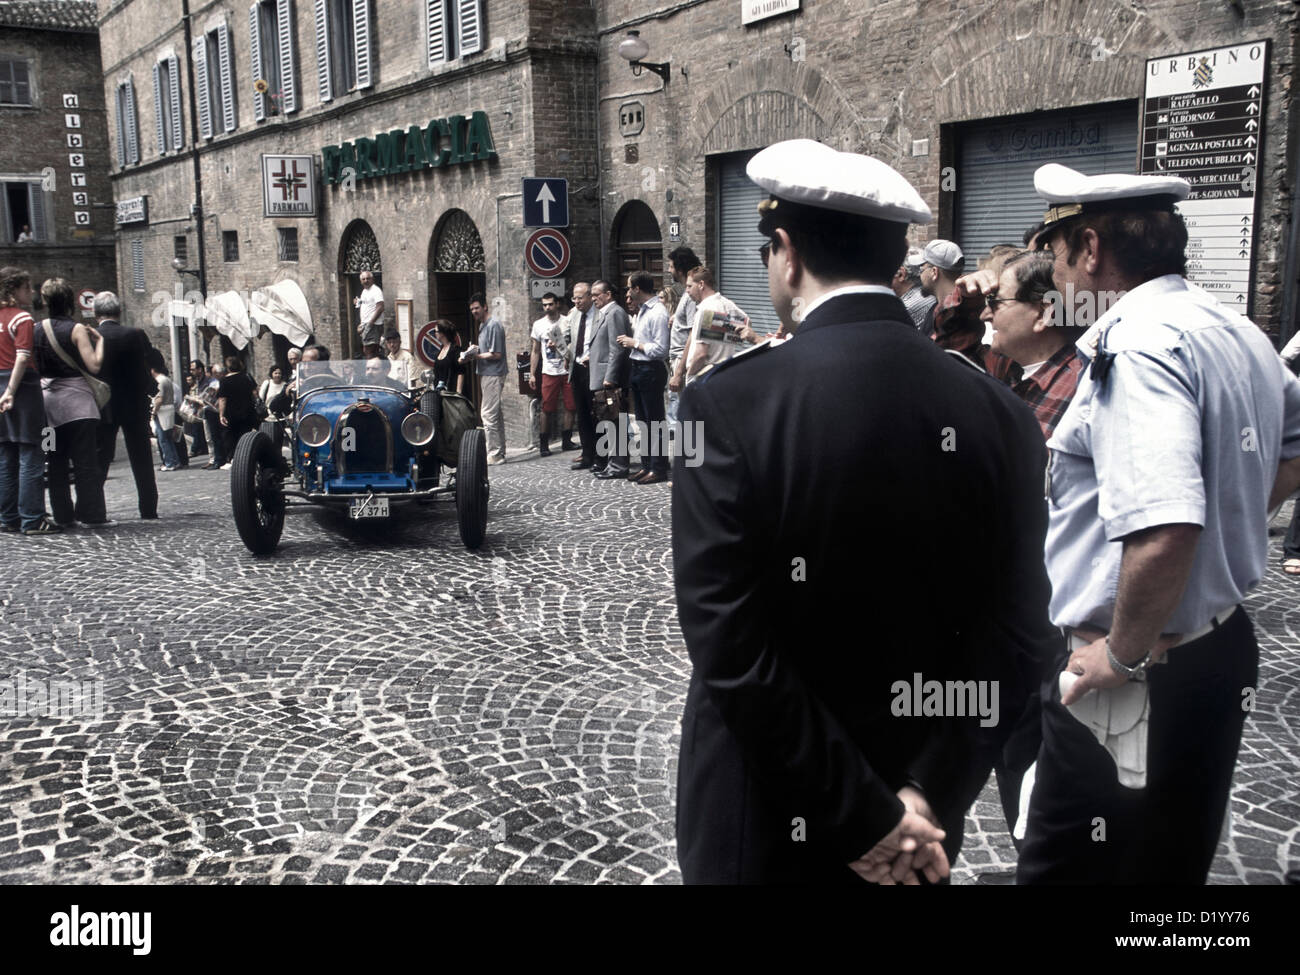 1920's Bugatti racing car watched by two Italian policemen in Urbino town centre durin the 2001 Mille Miglia - Stock Image